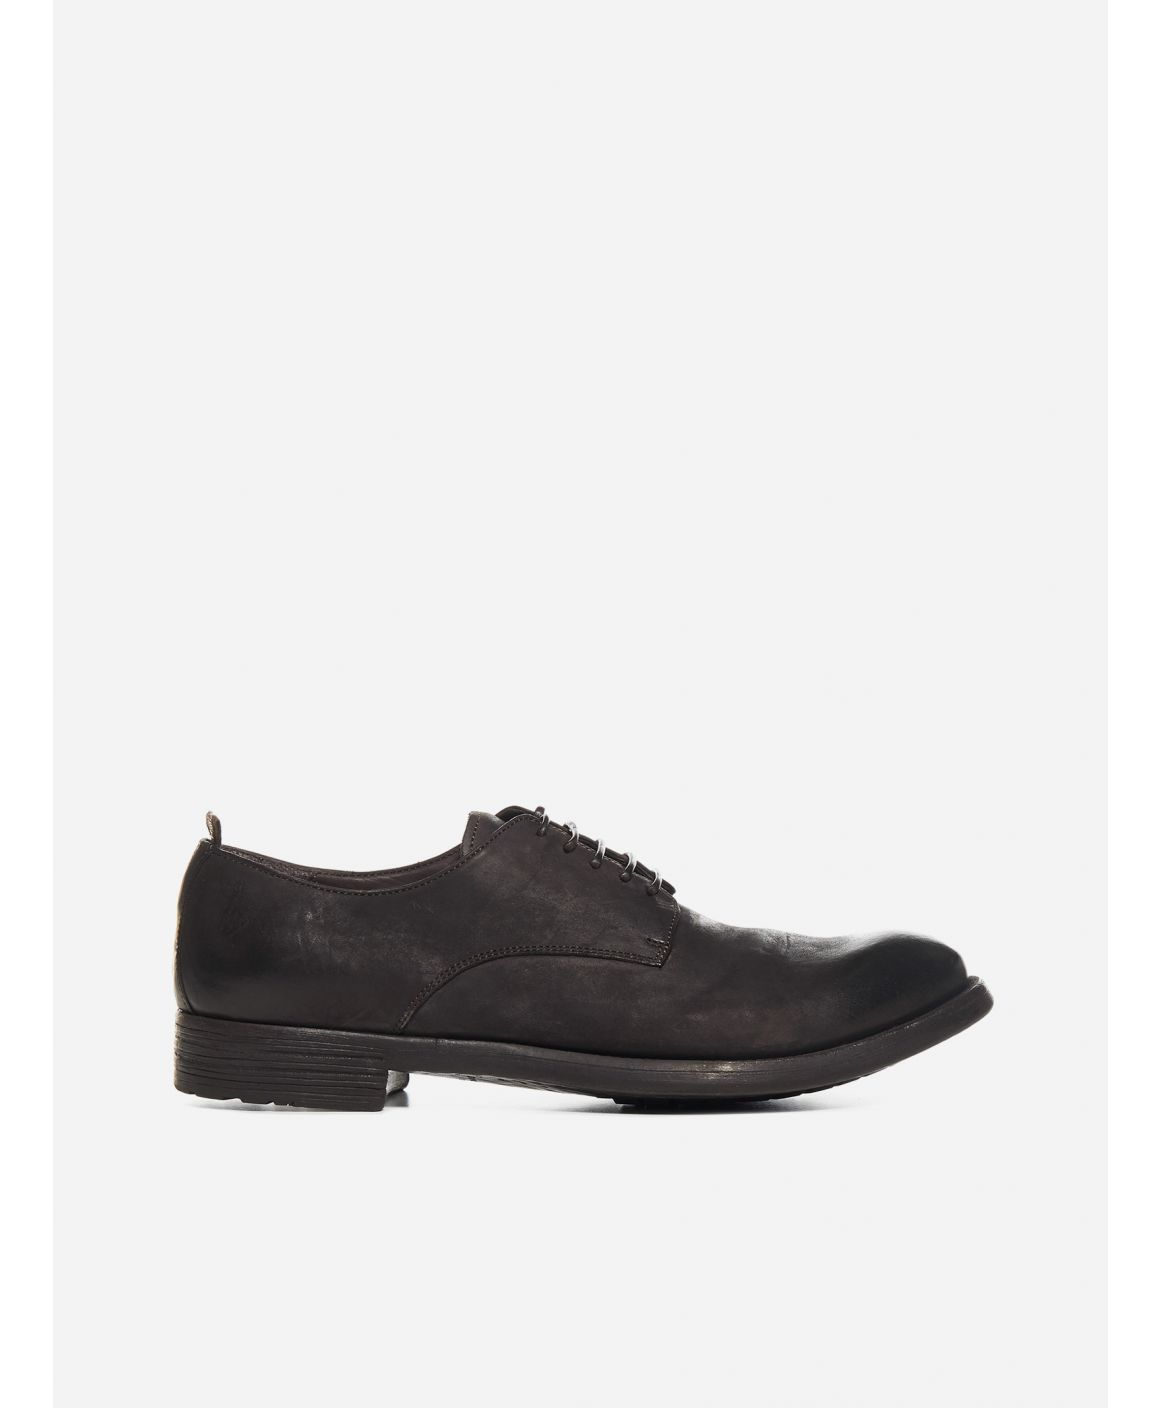 Hive 8 leather derby shoes